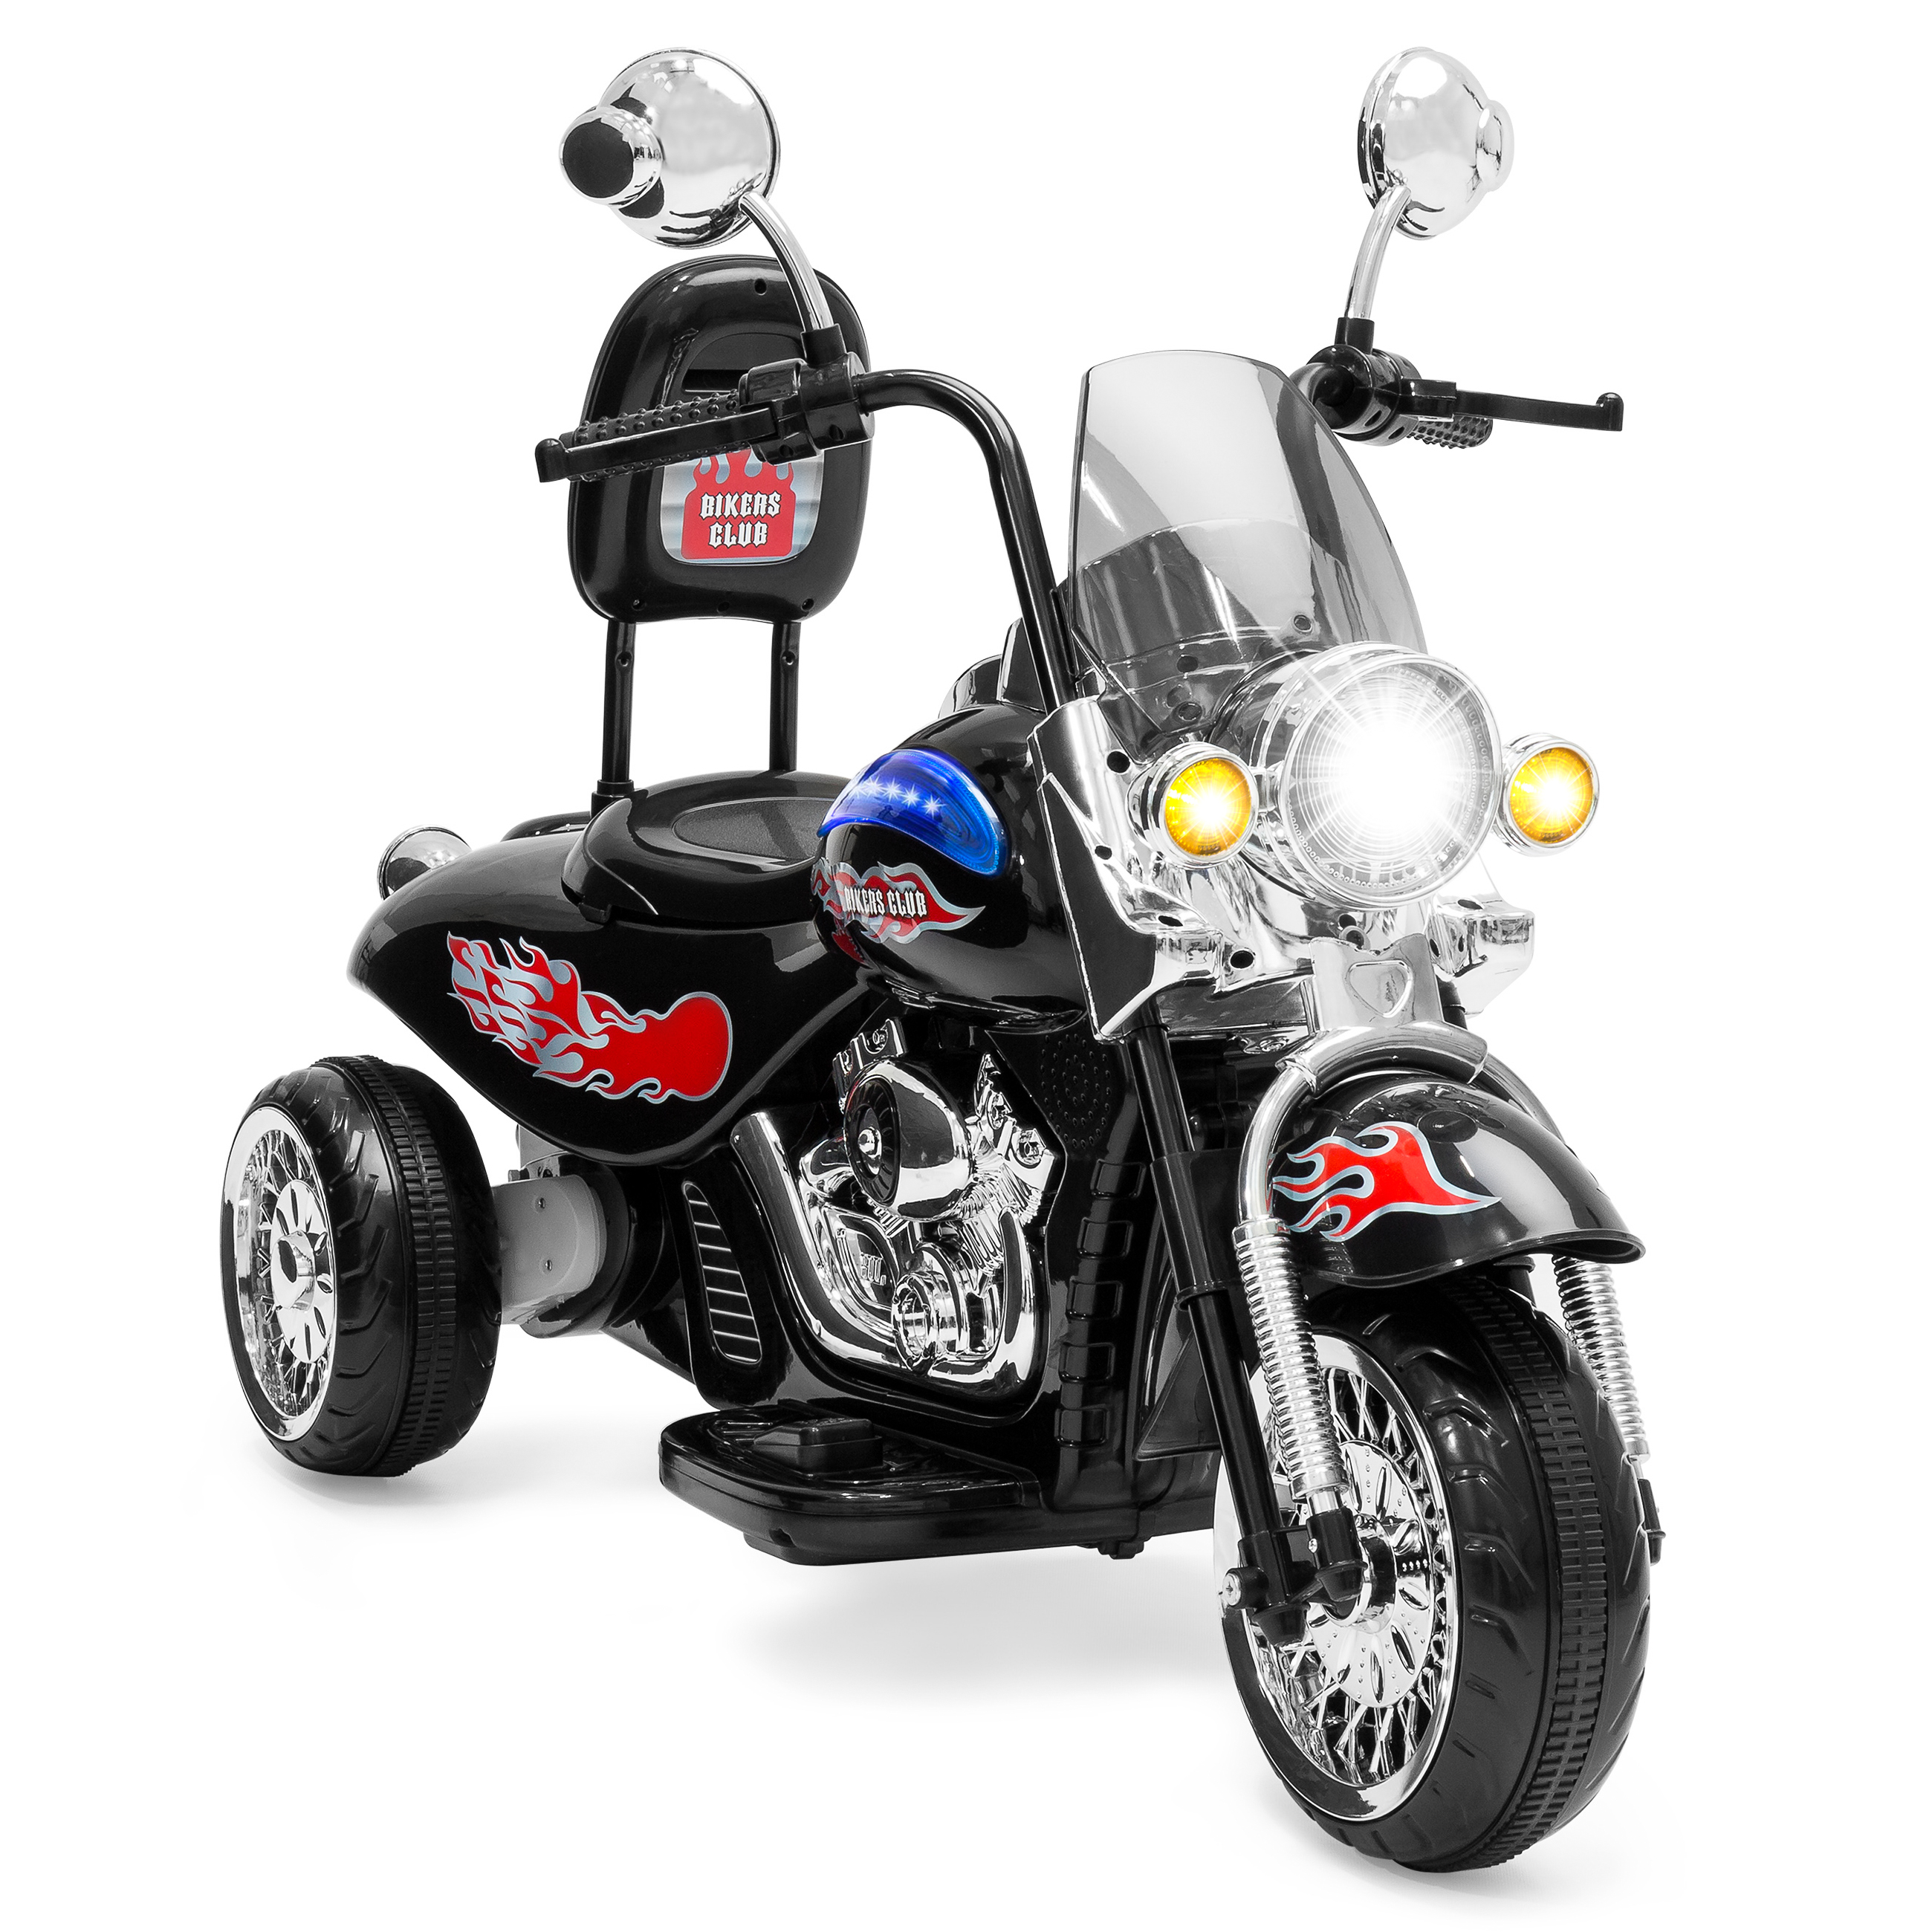 Best Choice Products 12V Kids Ride-On Motorcycle Chopper w/ Built-In Music, MP3 Plug-In - Black